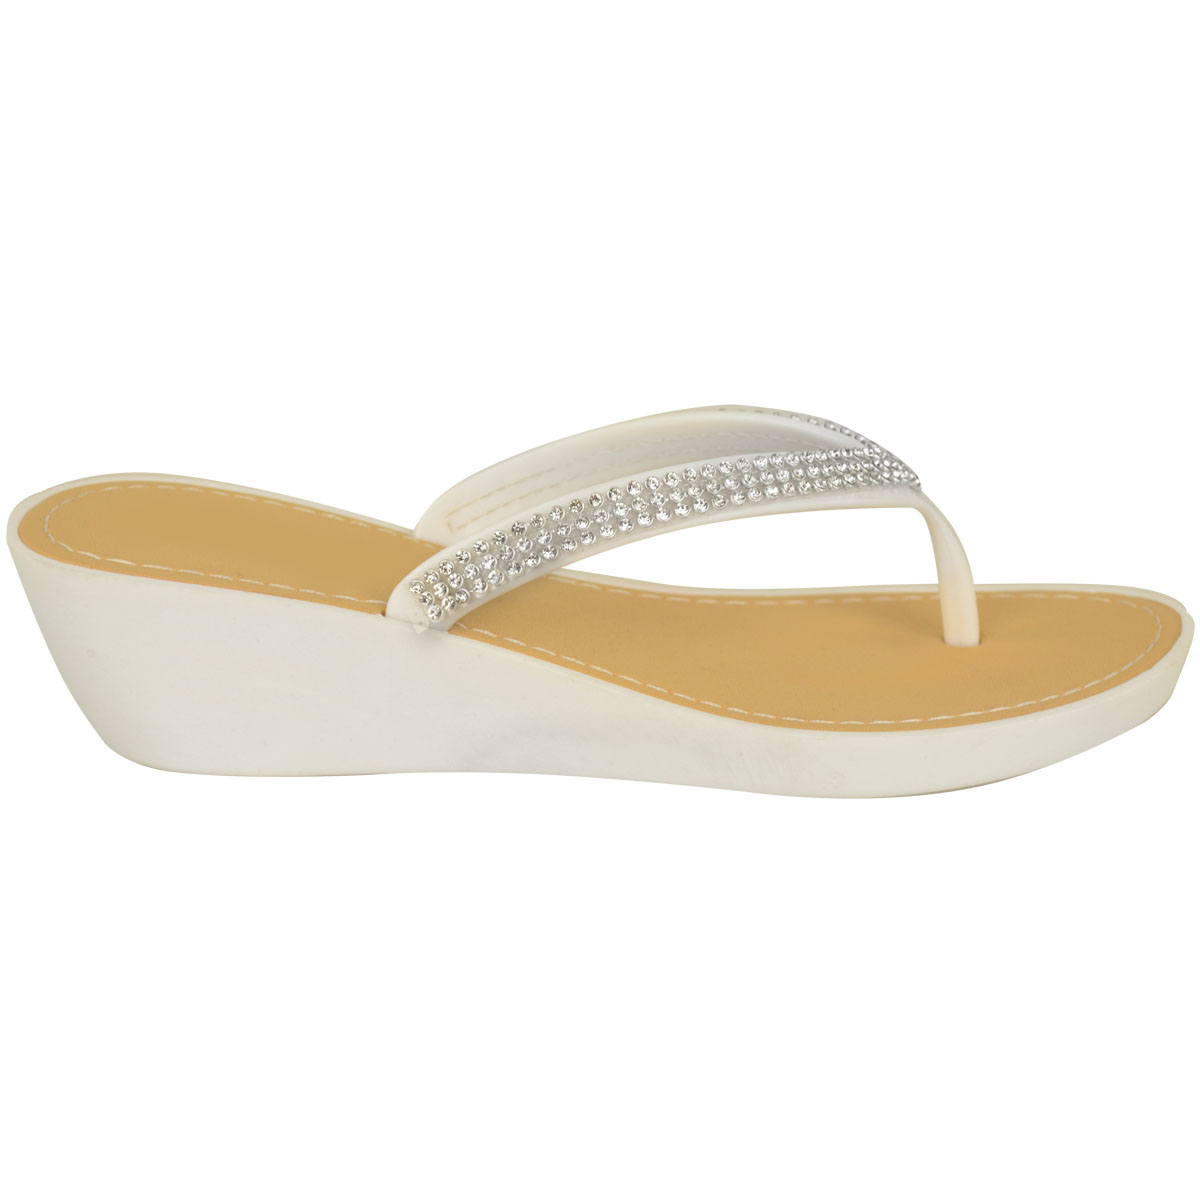 NEW-JELLY-SANDALS-WOMENS-LADIES-DIAMANTE-SUMMER-HOLIDAY-COMFORTS-FLIP-FLOPS-SIZE thumbnail 10